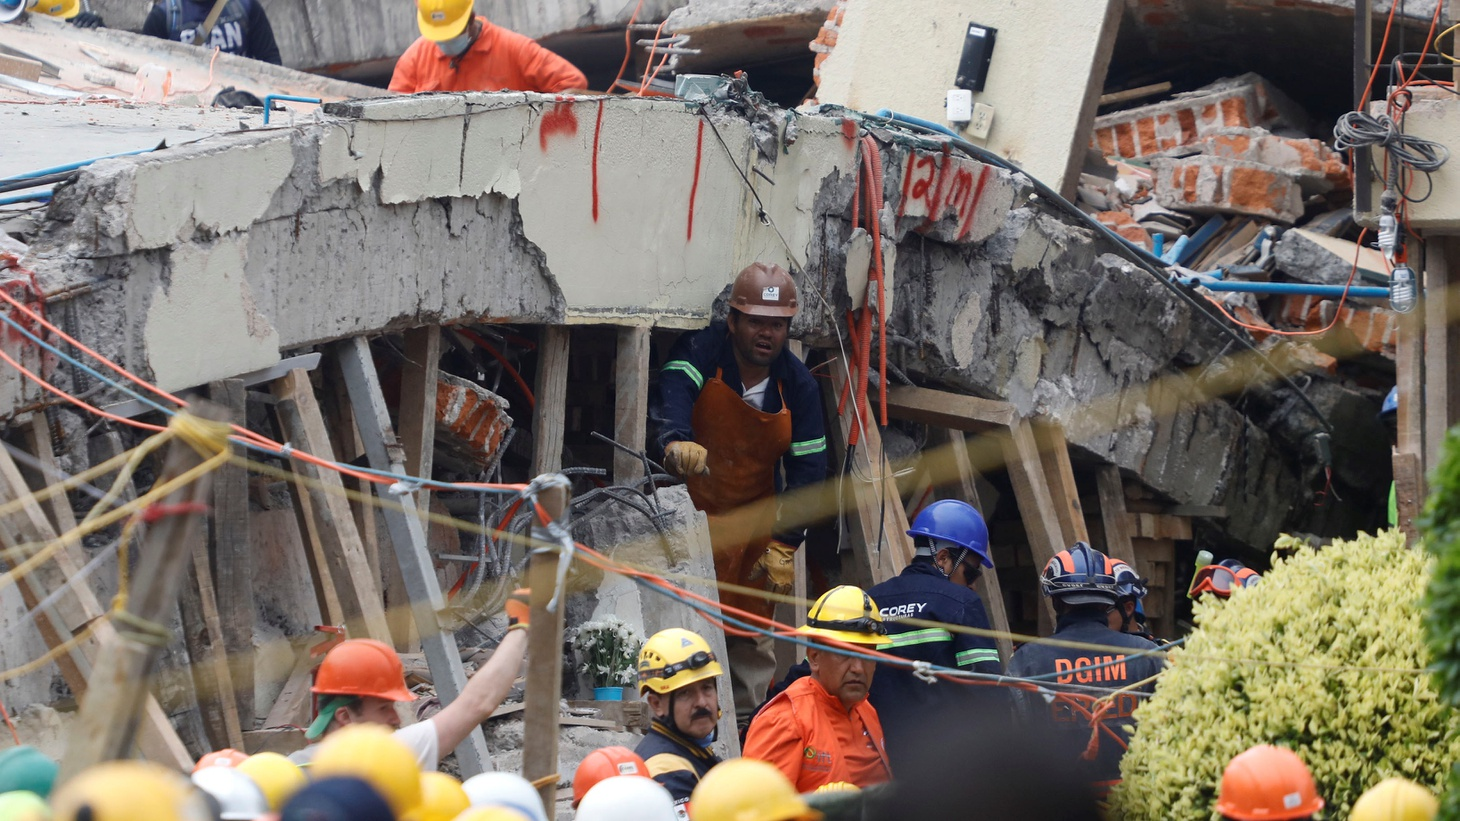 As we go to air, it's been roughly 48 hours since Mexico City was hit by a massive earthquake -- 32 years to the day since a previous tremor destroyed much of the city. At least 230 people have died.